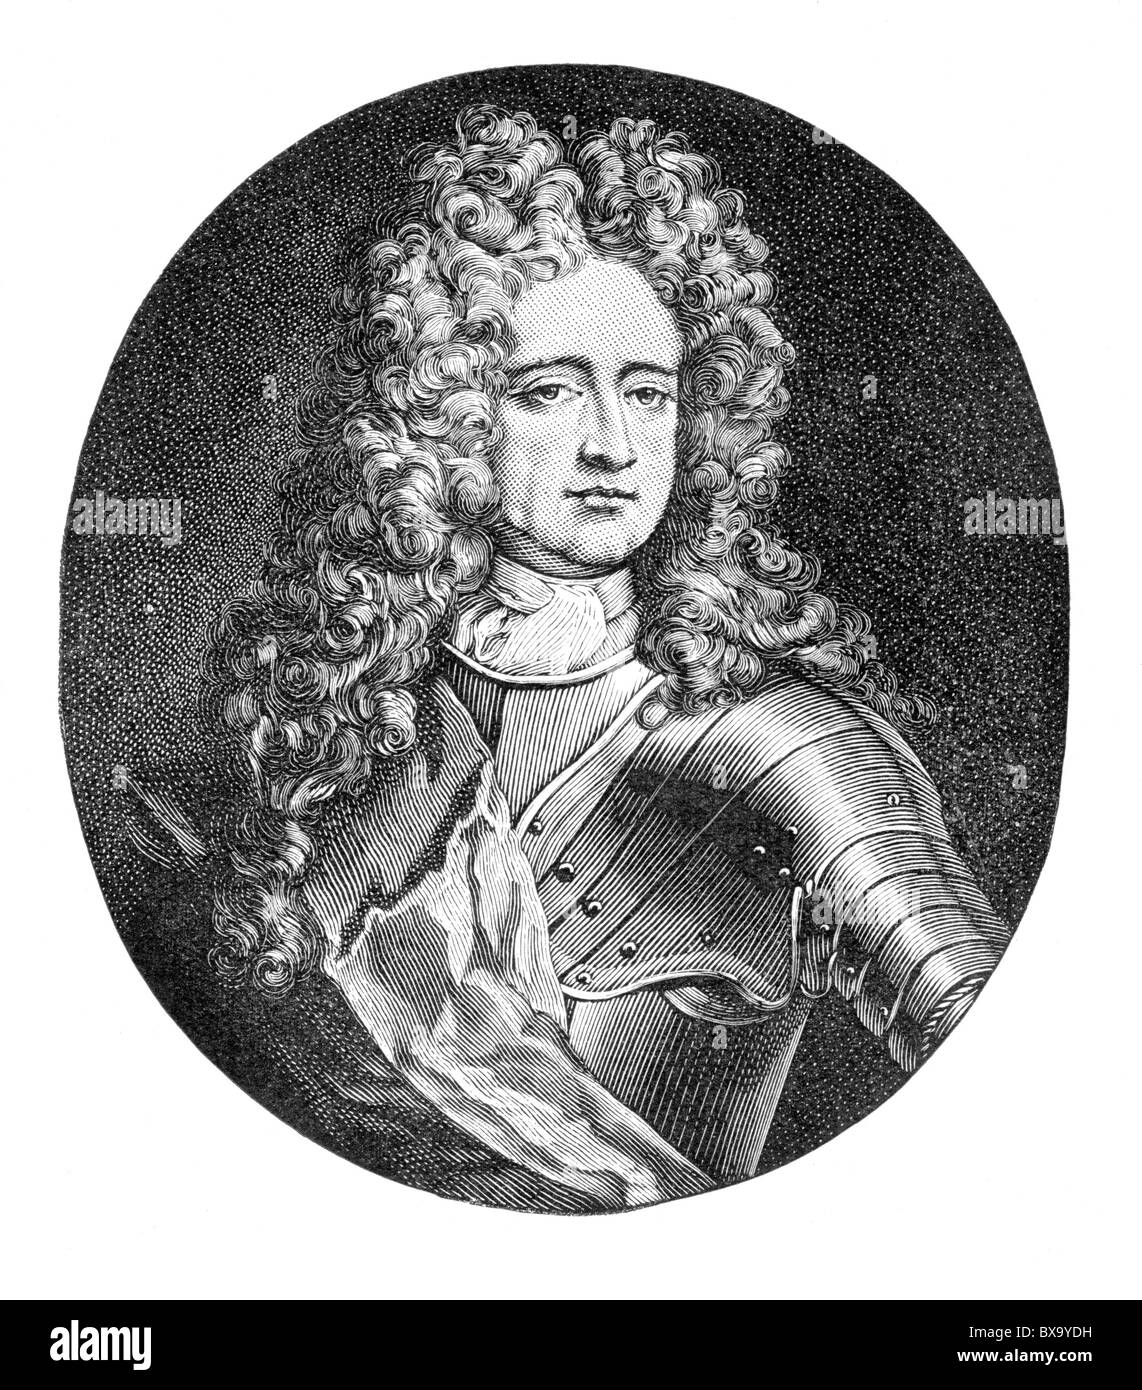 Portrait of Charles Mordaunt, 3rd Earl of Peterborough and 1st Earl of Monmouth; Black and White Illustration; Stock Photo